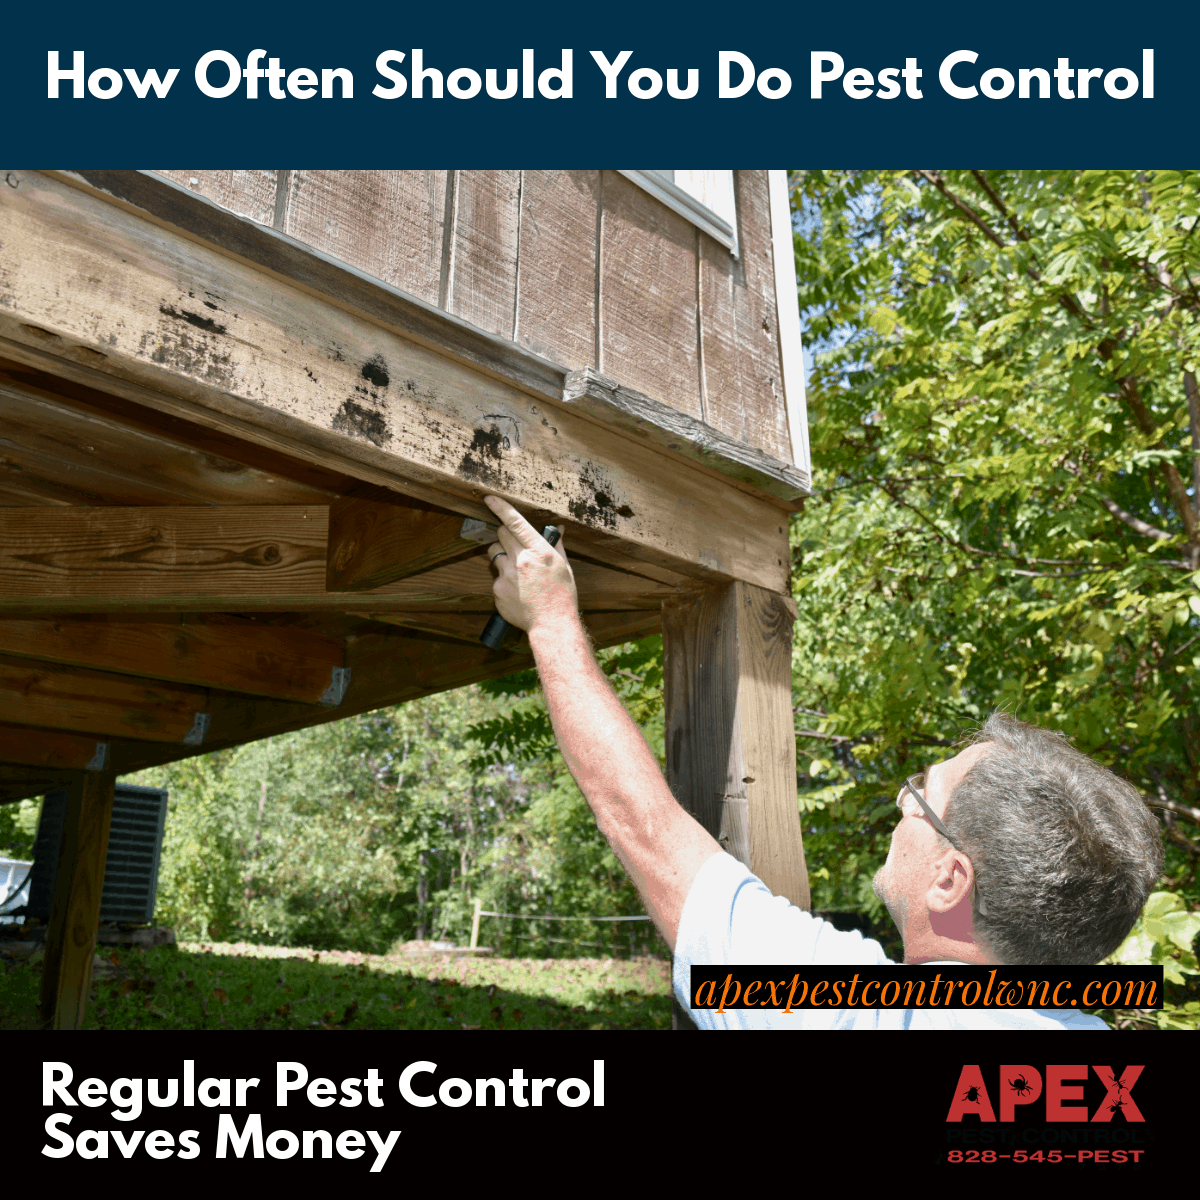 How Often Should You Treat For Pests?